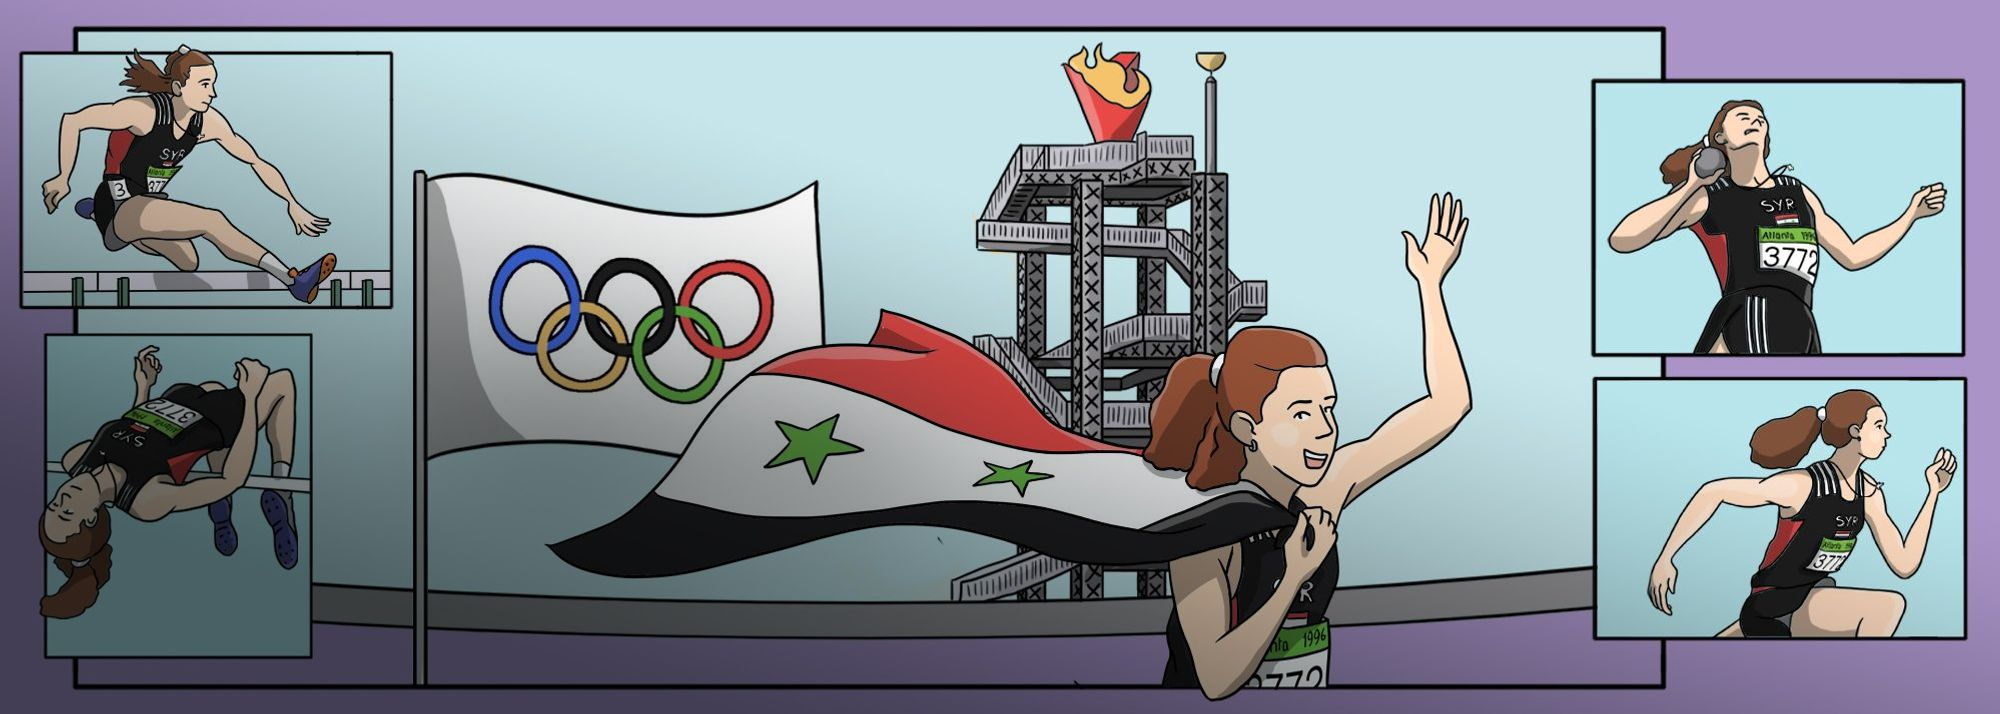 The Atlanta 1996 Games saw Shouaa win Syria's first and only Olympic gold medal.